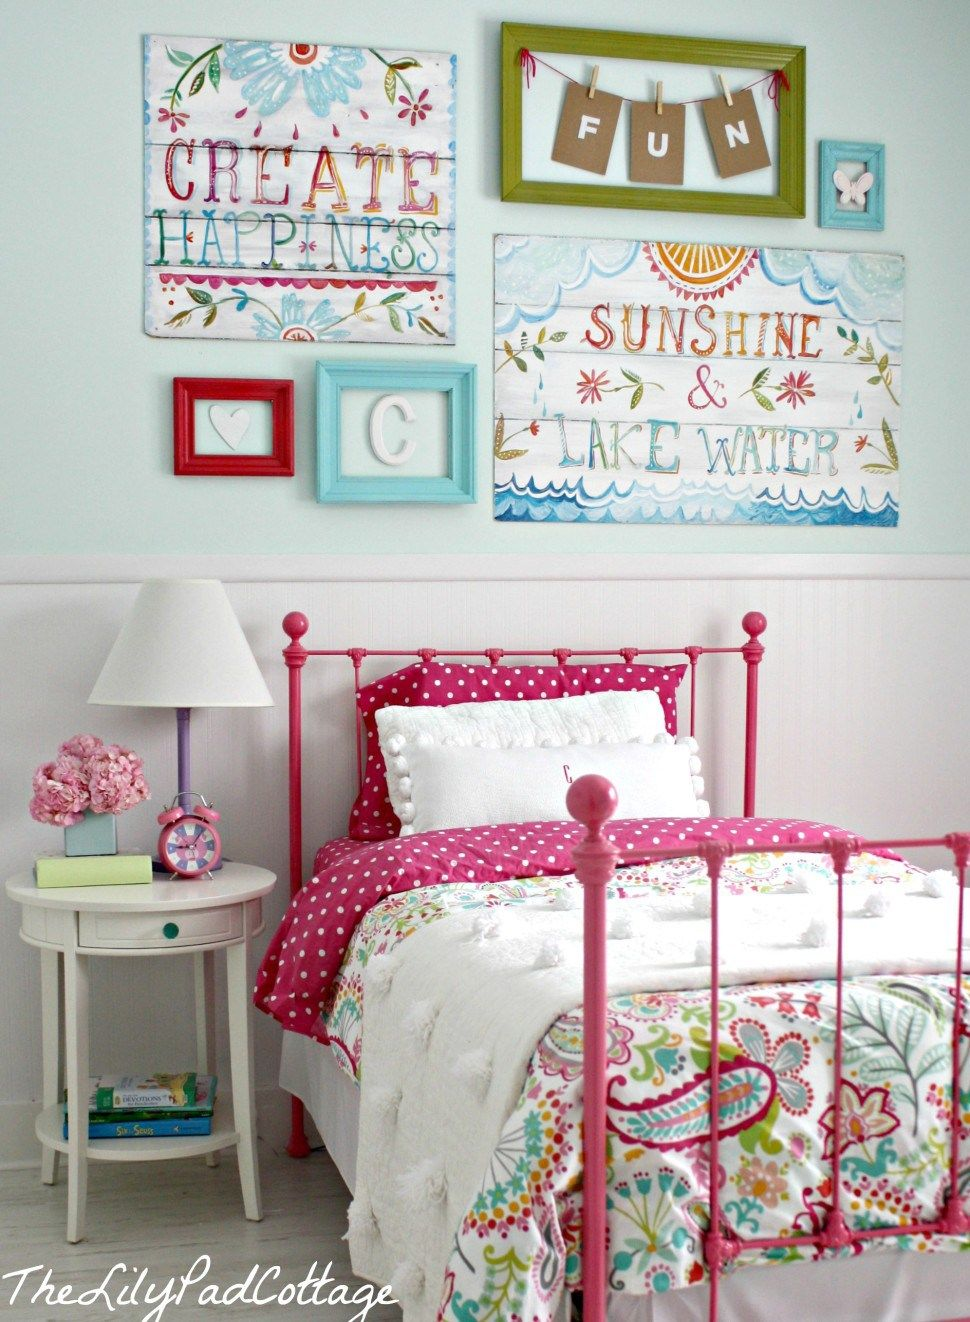 Simple Bedroom Teens Room Picture Cute Teen Rooms Gallery Image Cute Teen Room  Ideas